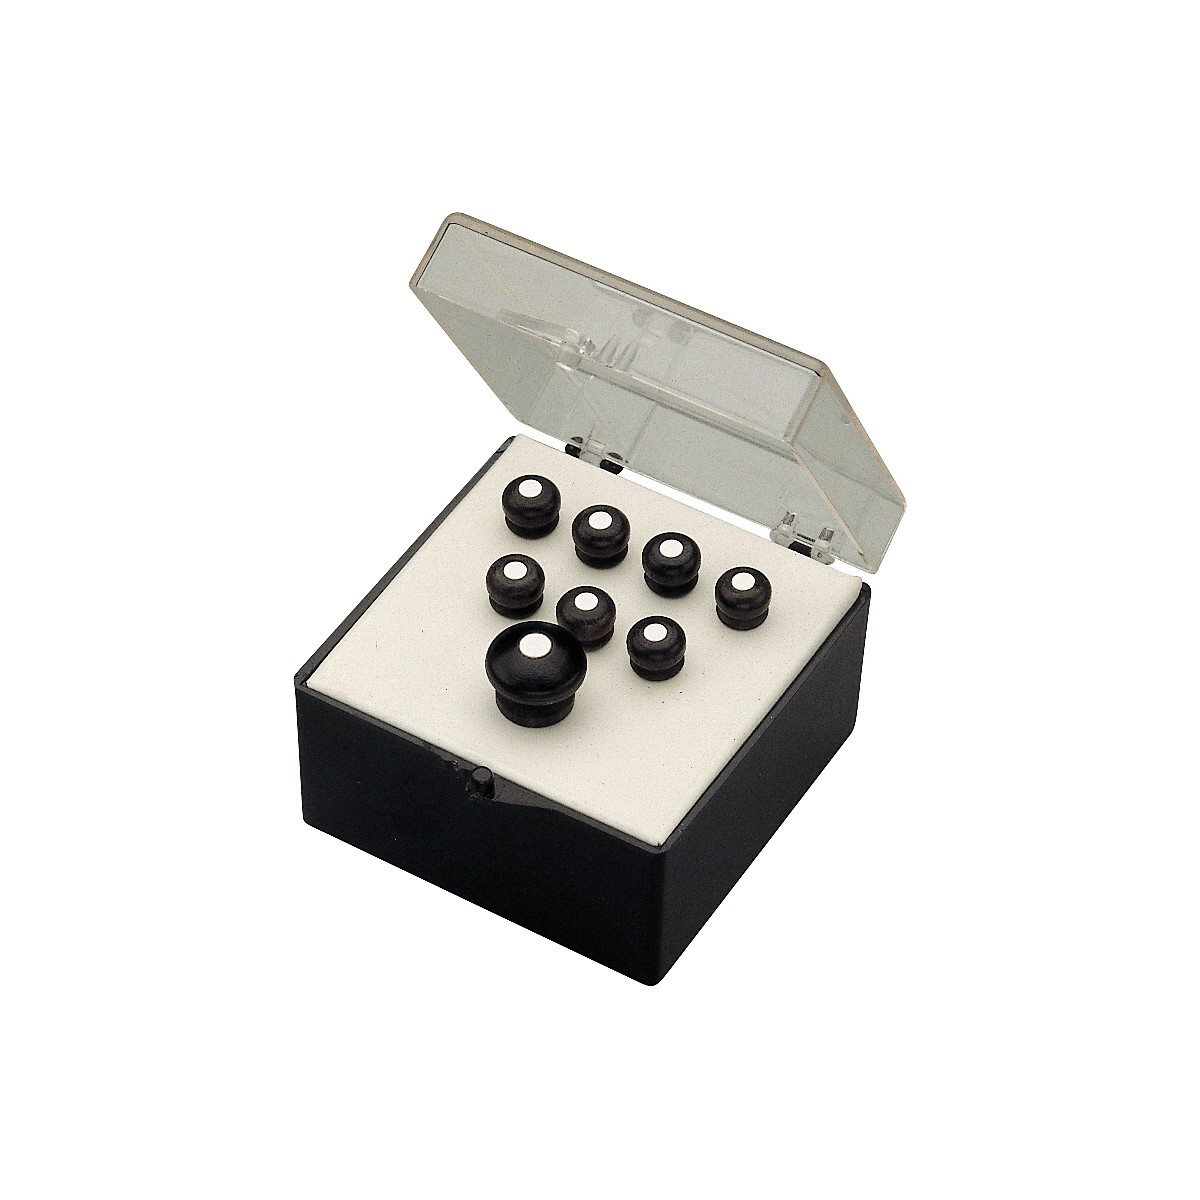 Martin Bridge and End Pin Set in Black with White Dots